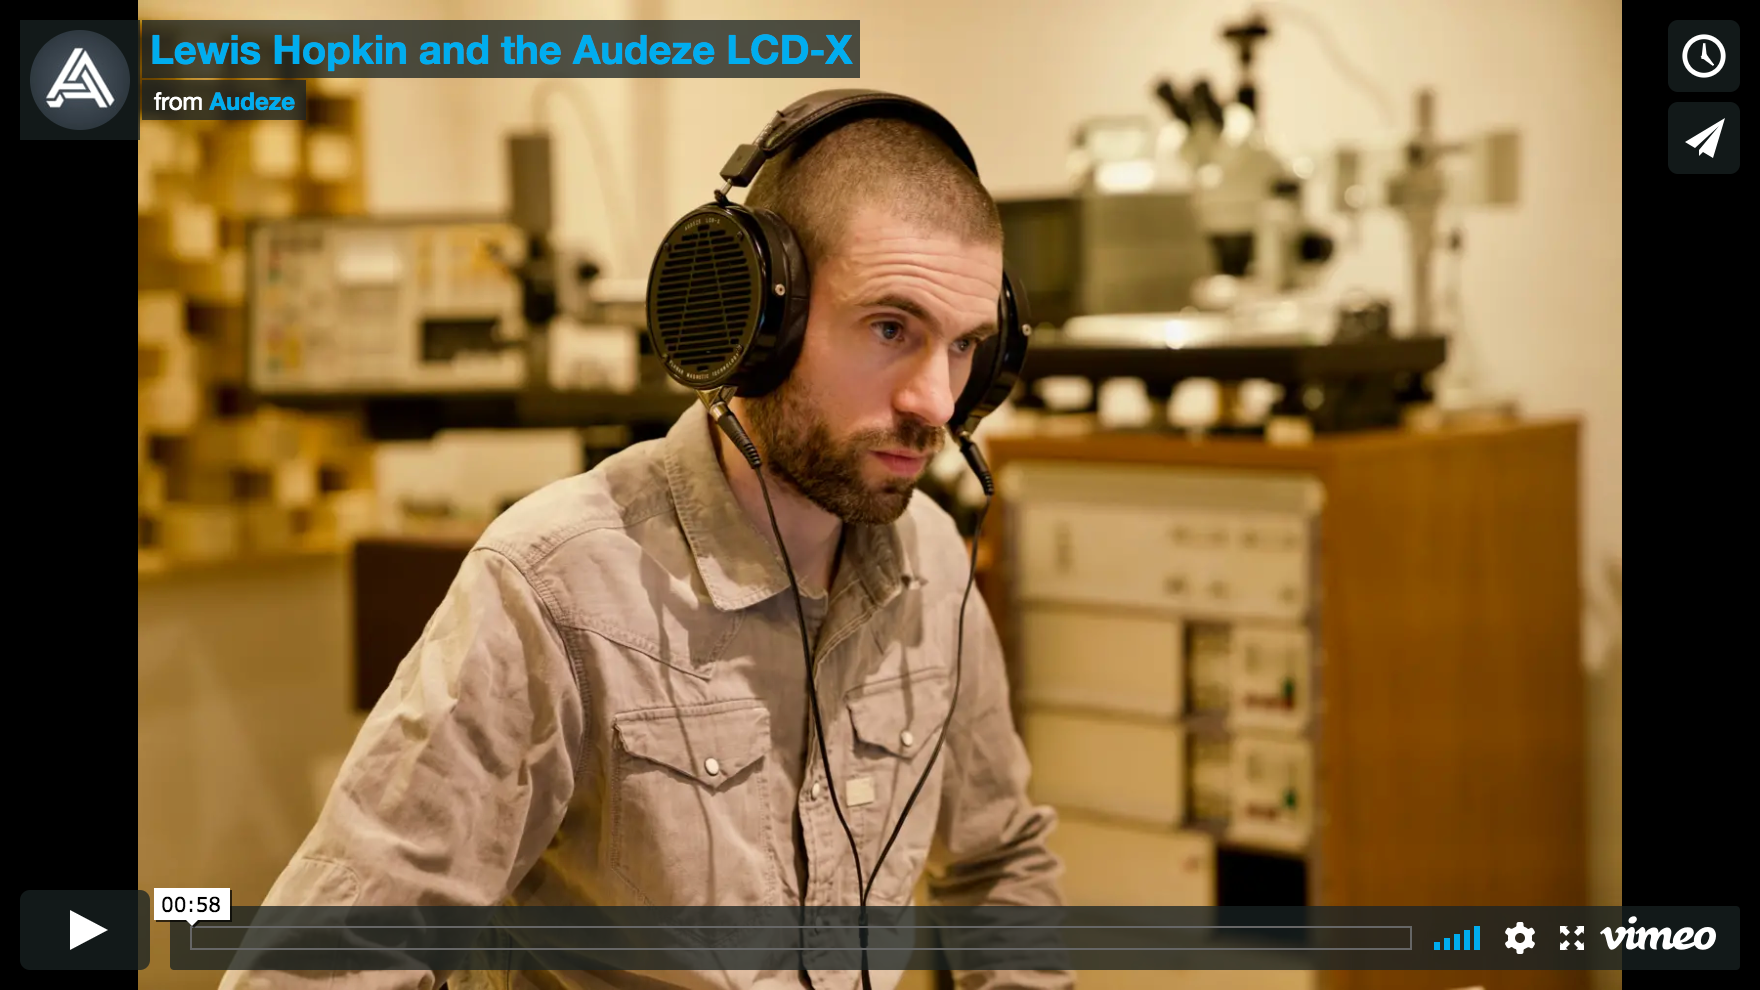 Grammy Award-winner Lewis Hopkin on the Audeze LCD-X